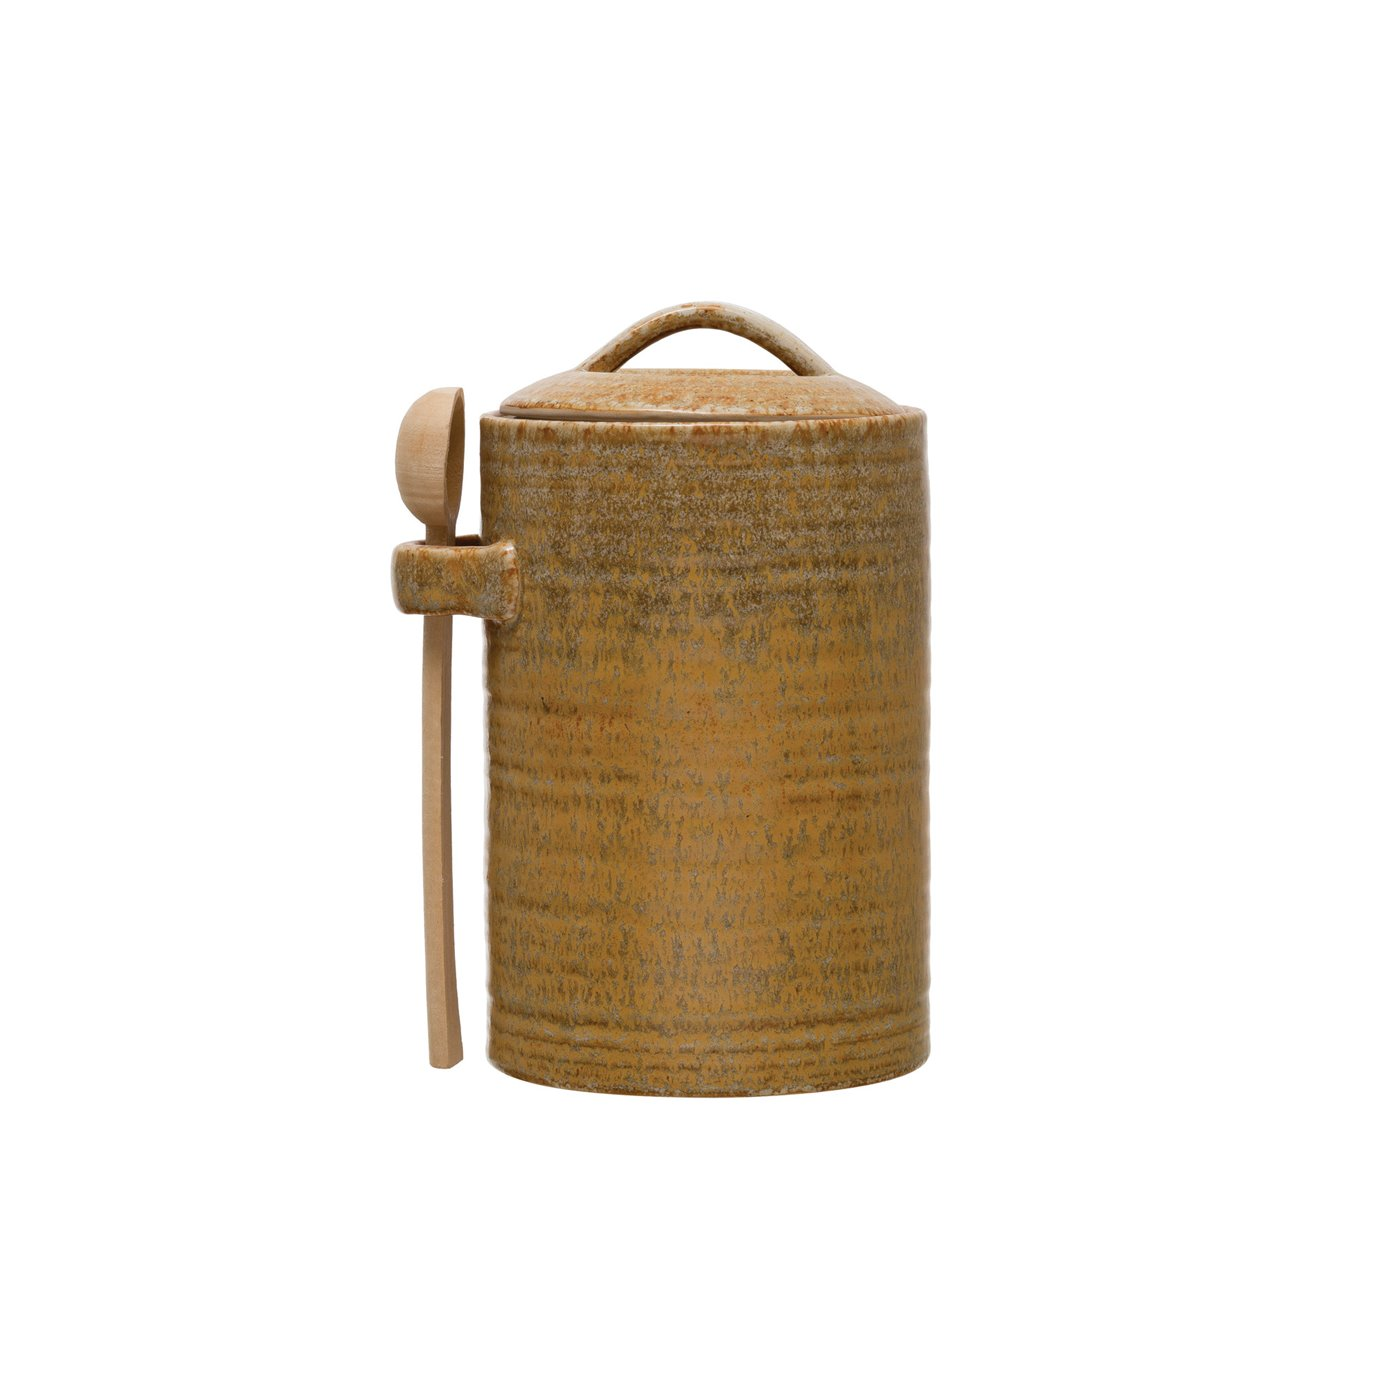 Stoneware Canister with Wood Spoon